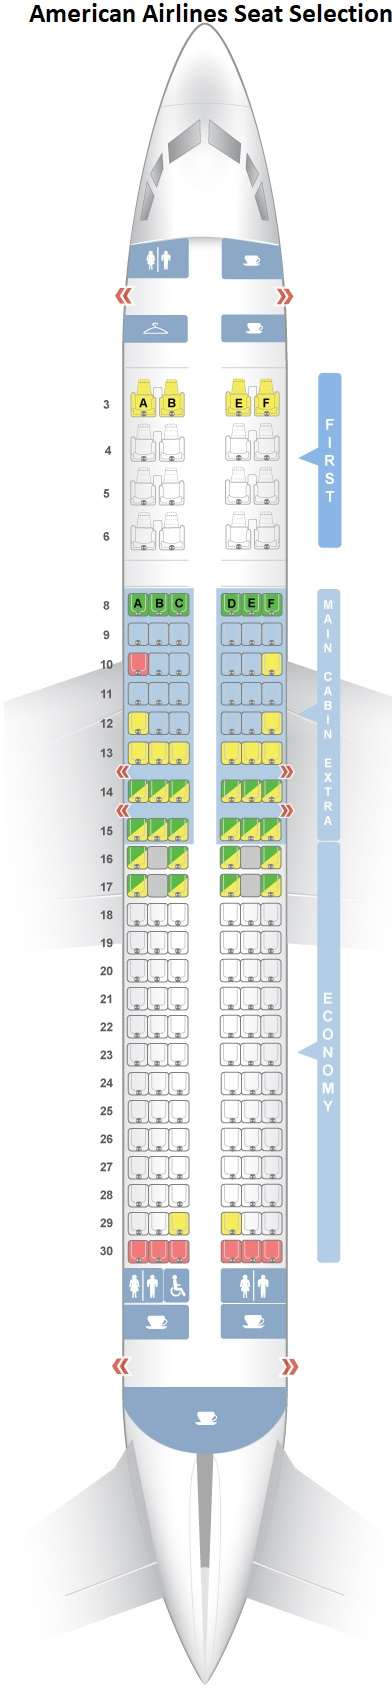 American Airlines Seat Selection